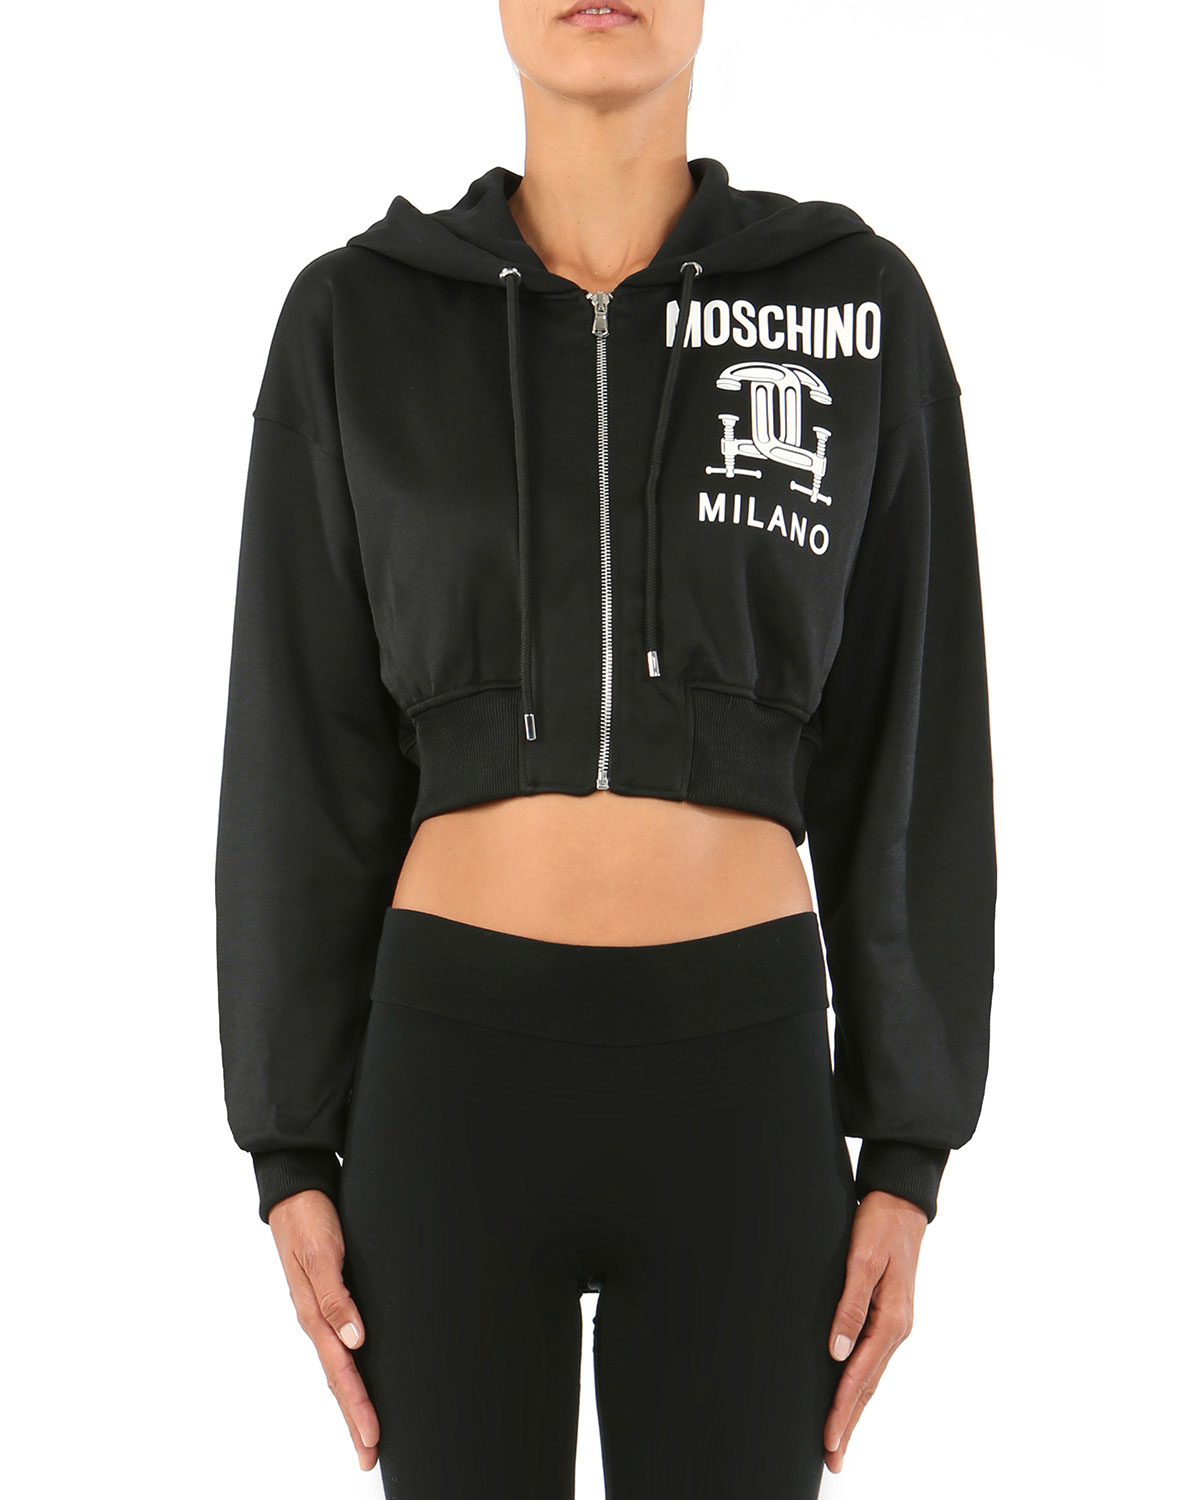 Moschino Long-sleeve Cropped Hooded Sweatshirt in Black | Lyst